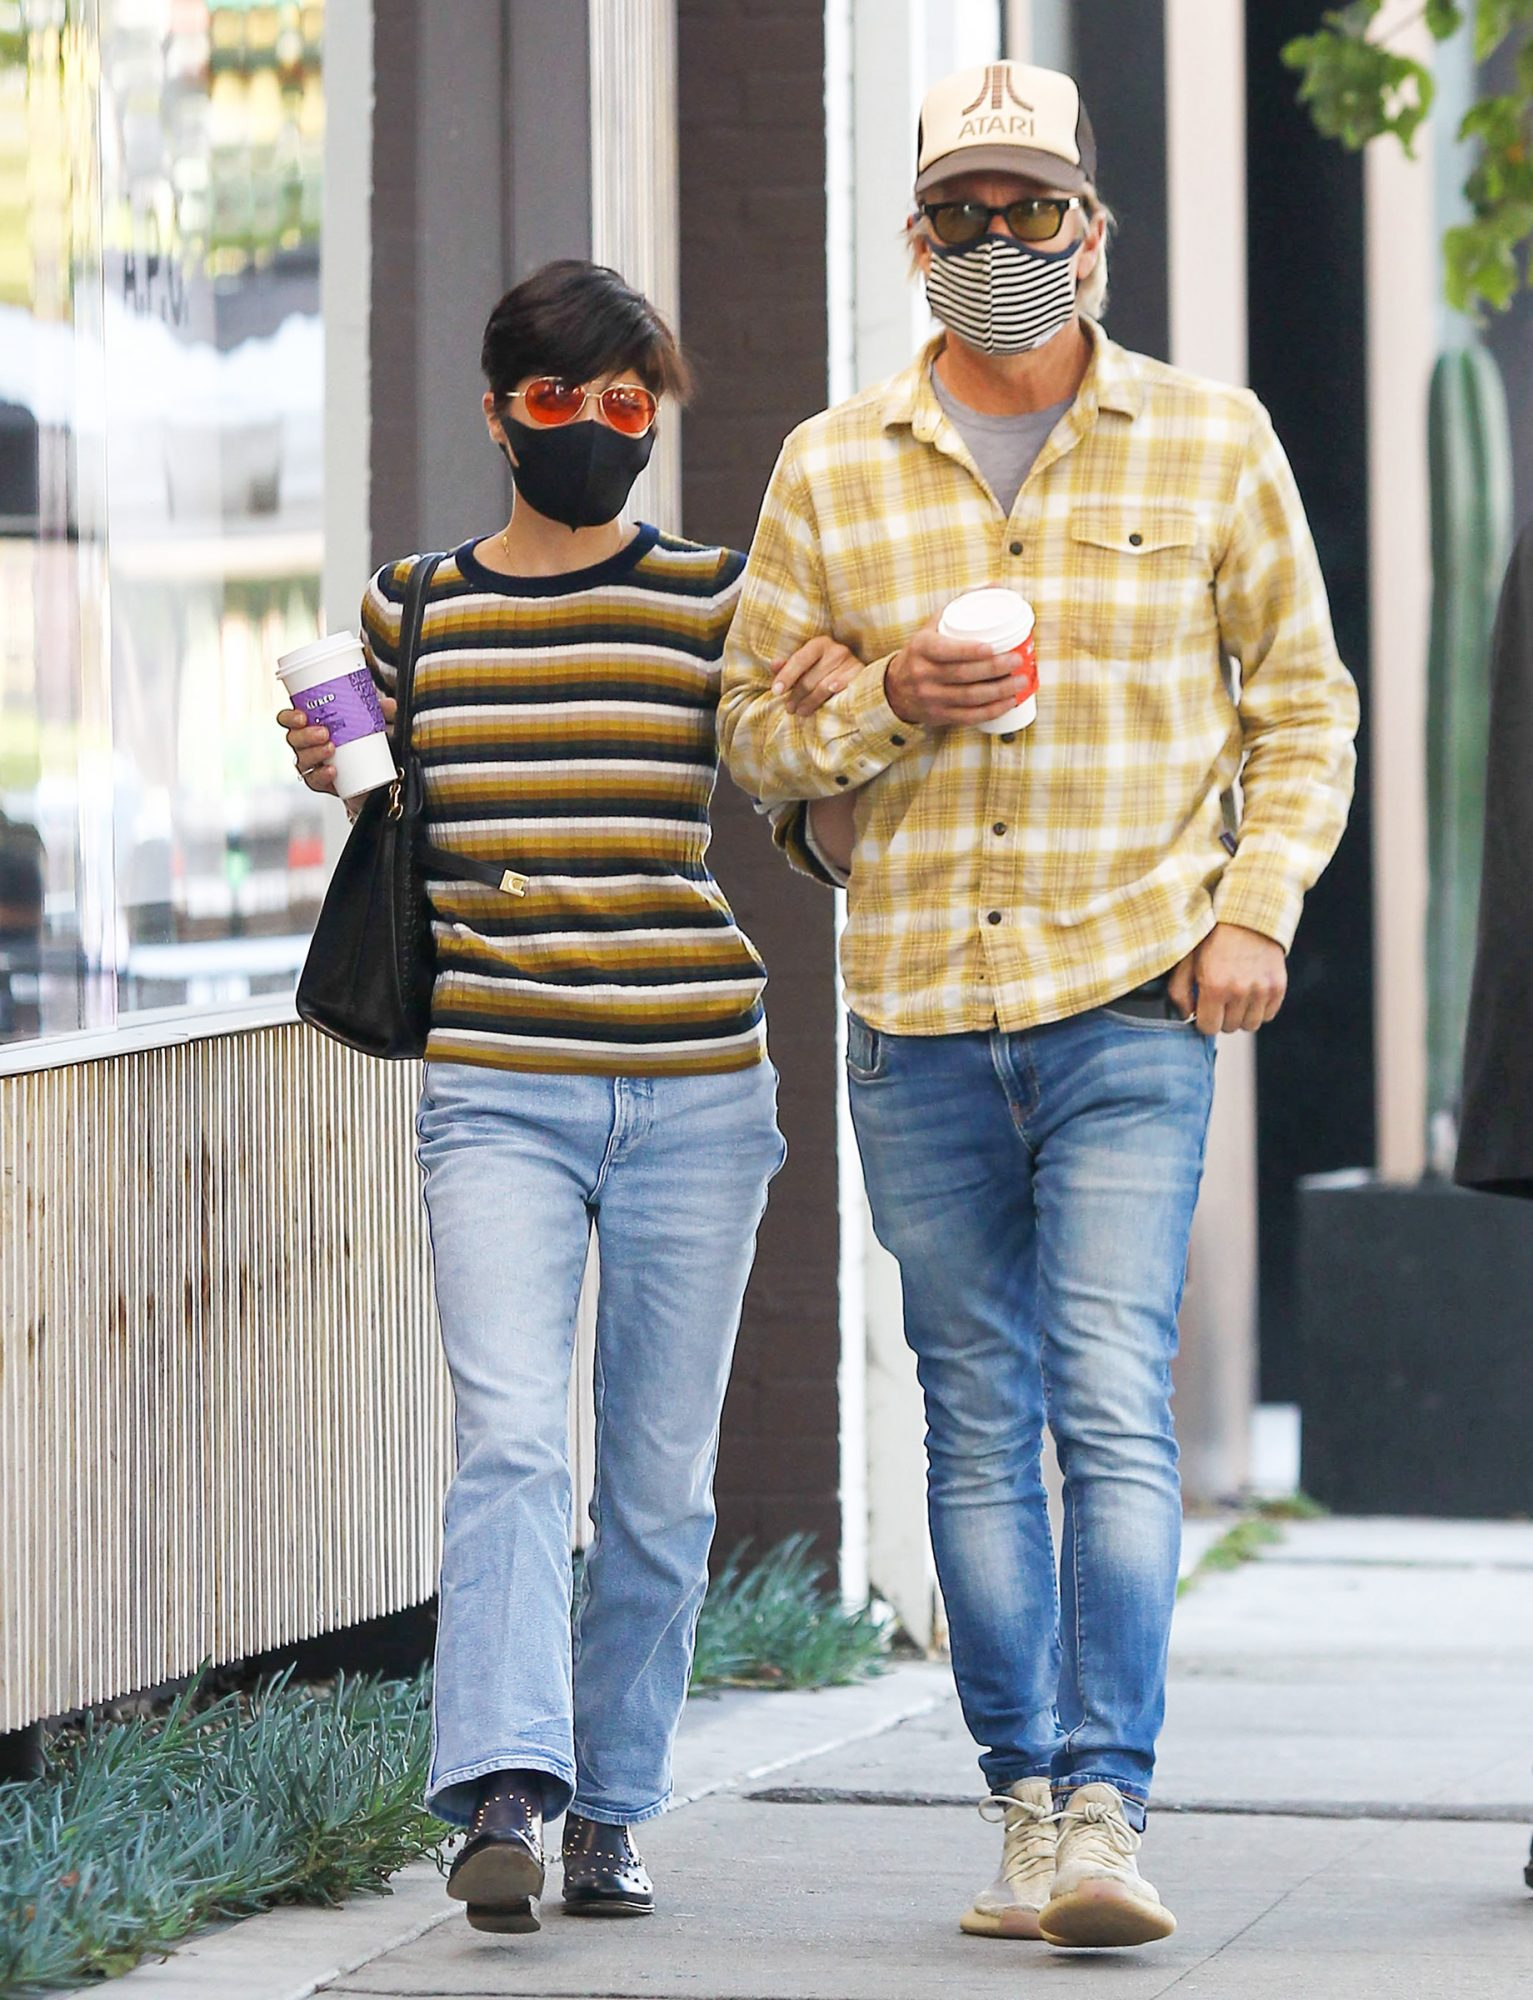 Selma Blair and Ron Carlson are seen on October 27, 2020 in Los Angeles, California